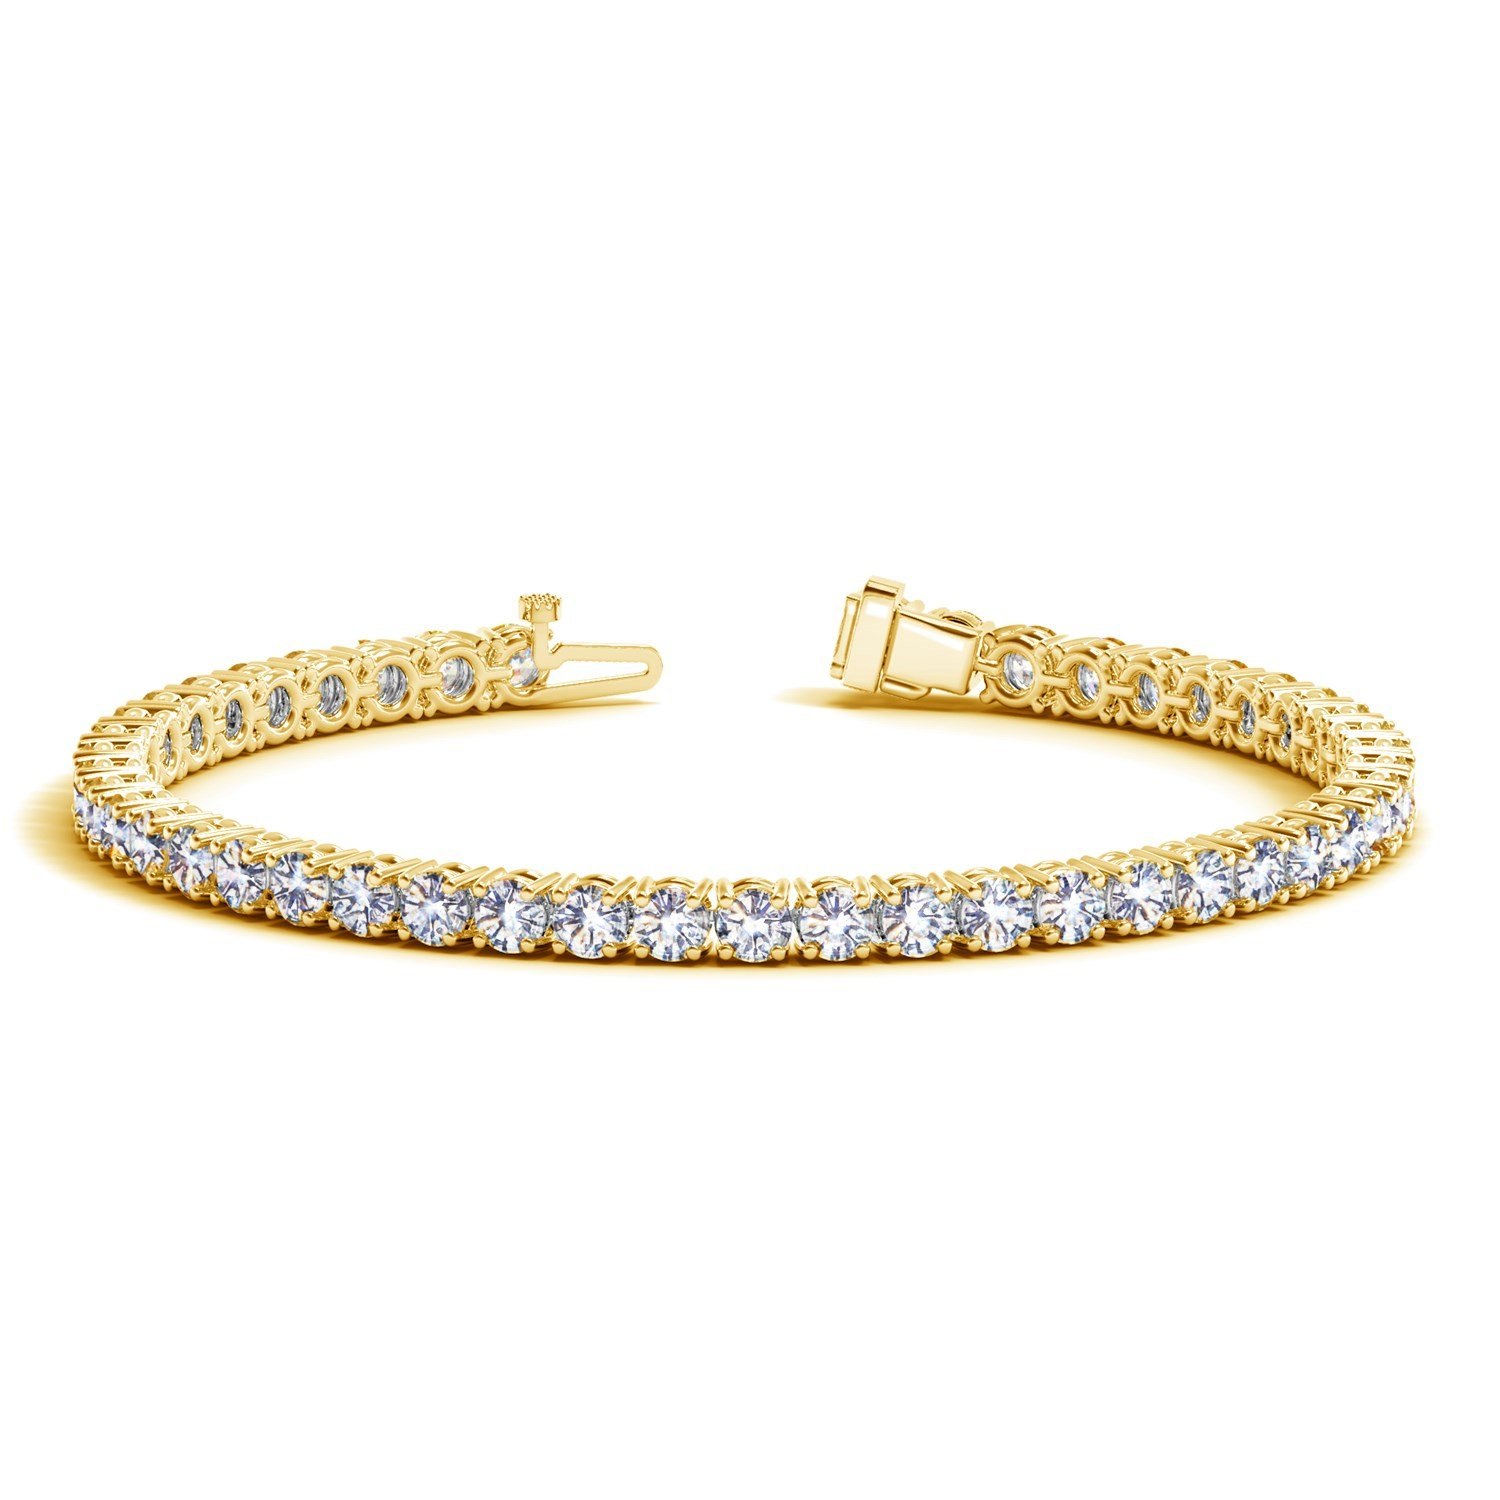 5 Carat Classic Diamond Tennis Bracelet 14K Yellow Gold Ultra Premium Collection